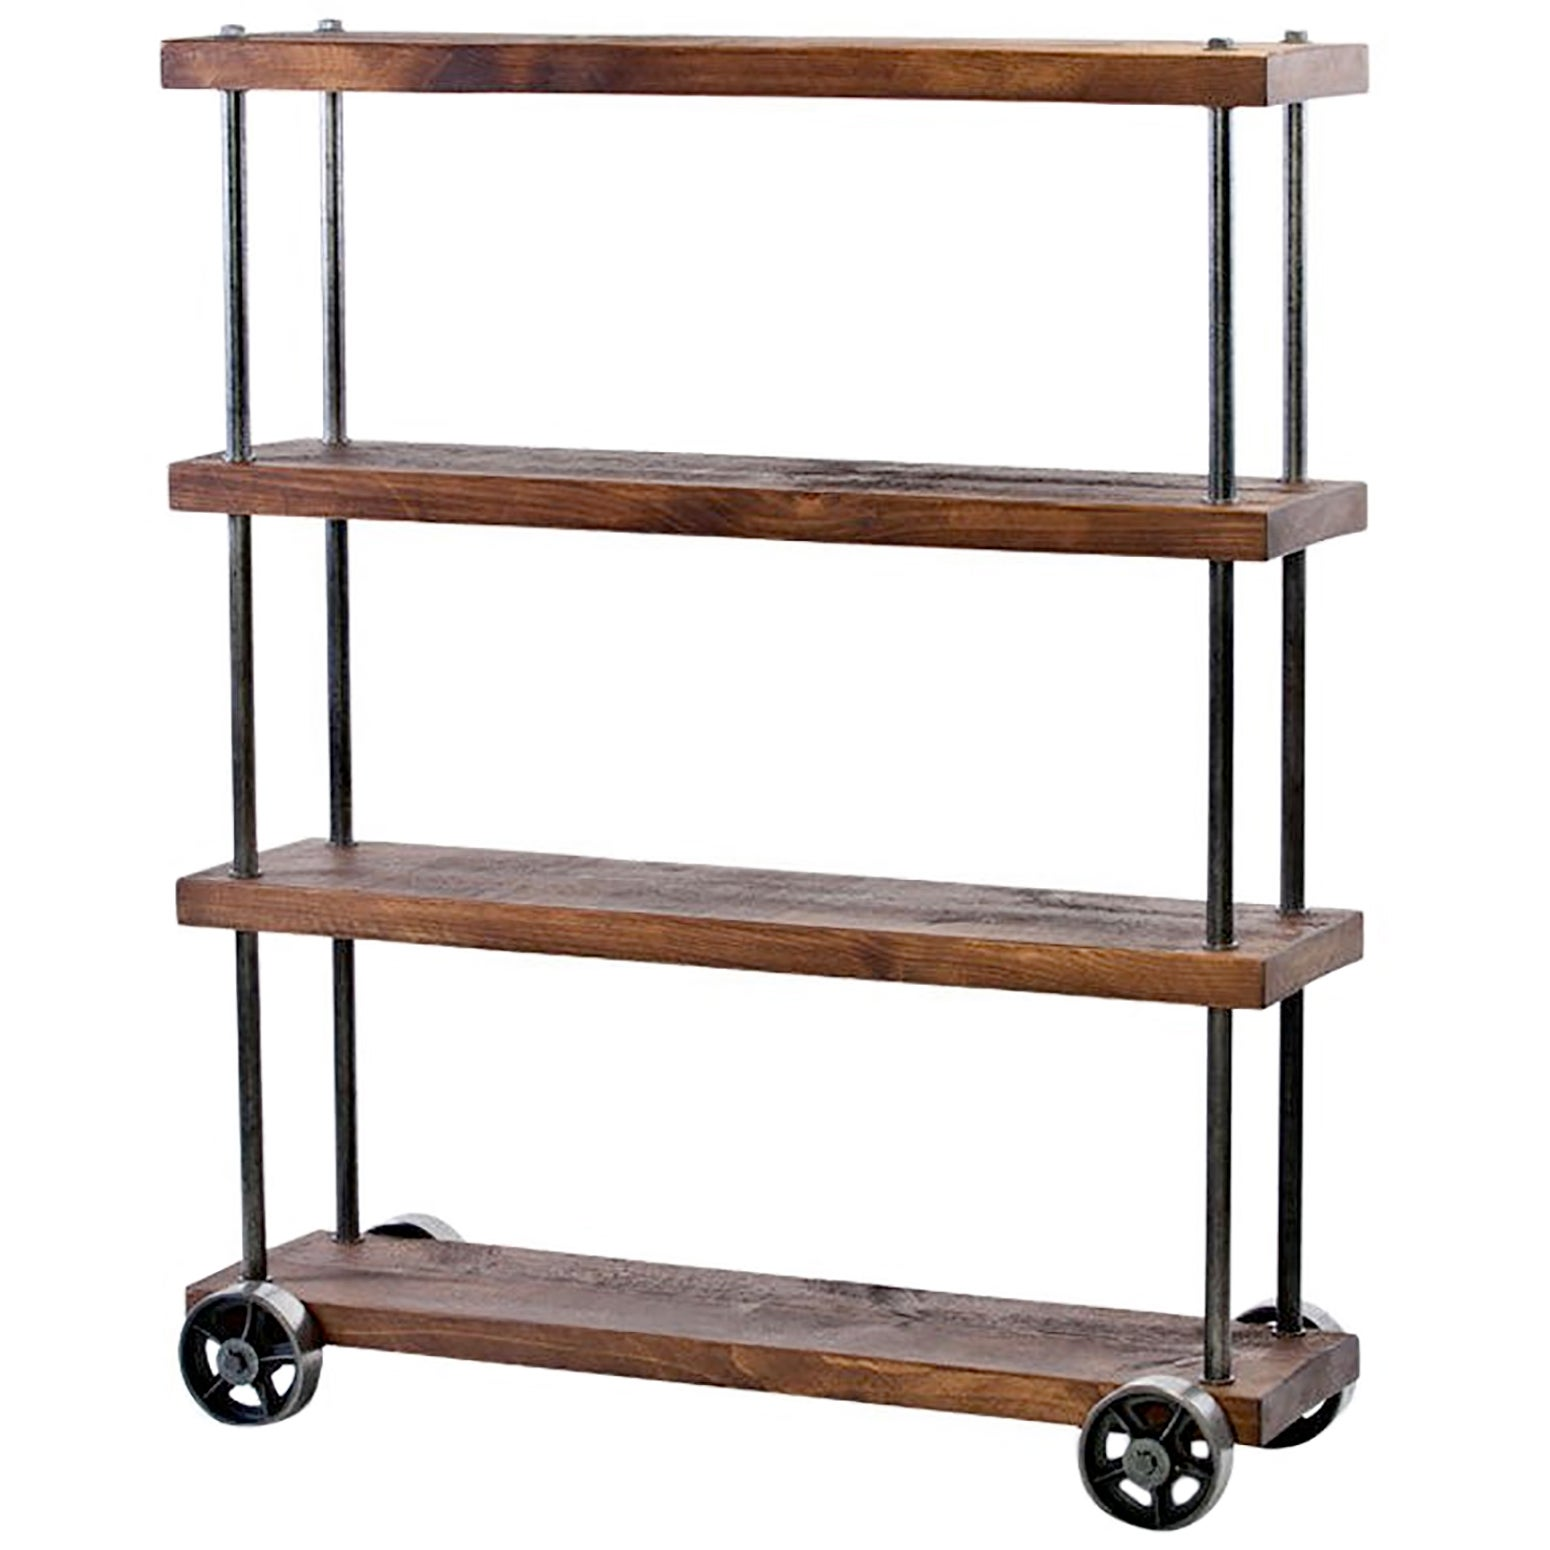 Industrial Rolling Cart Wood and Steel, Iron Storage Shelving on Castors